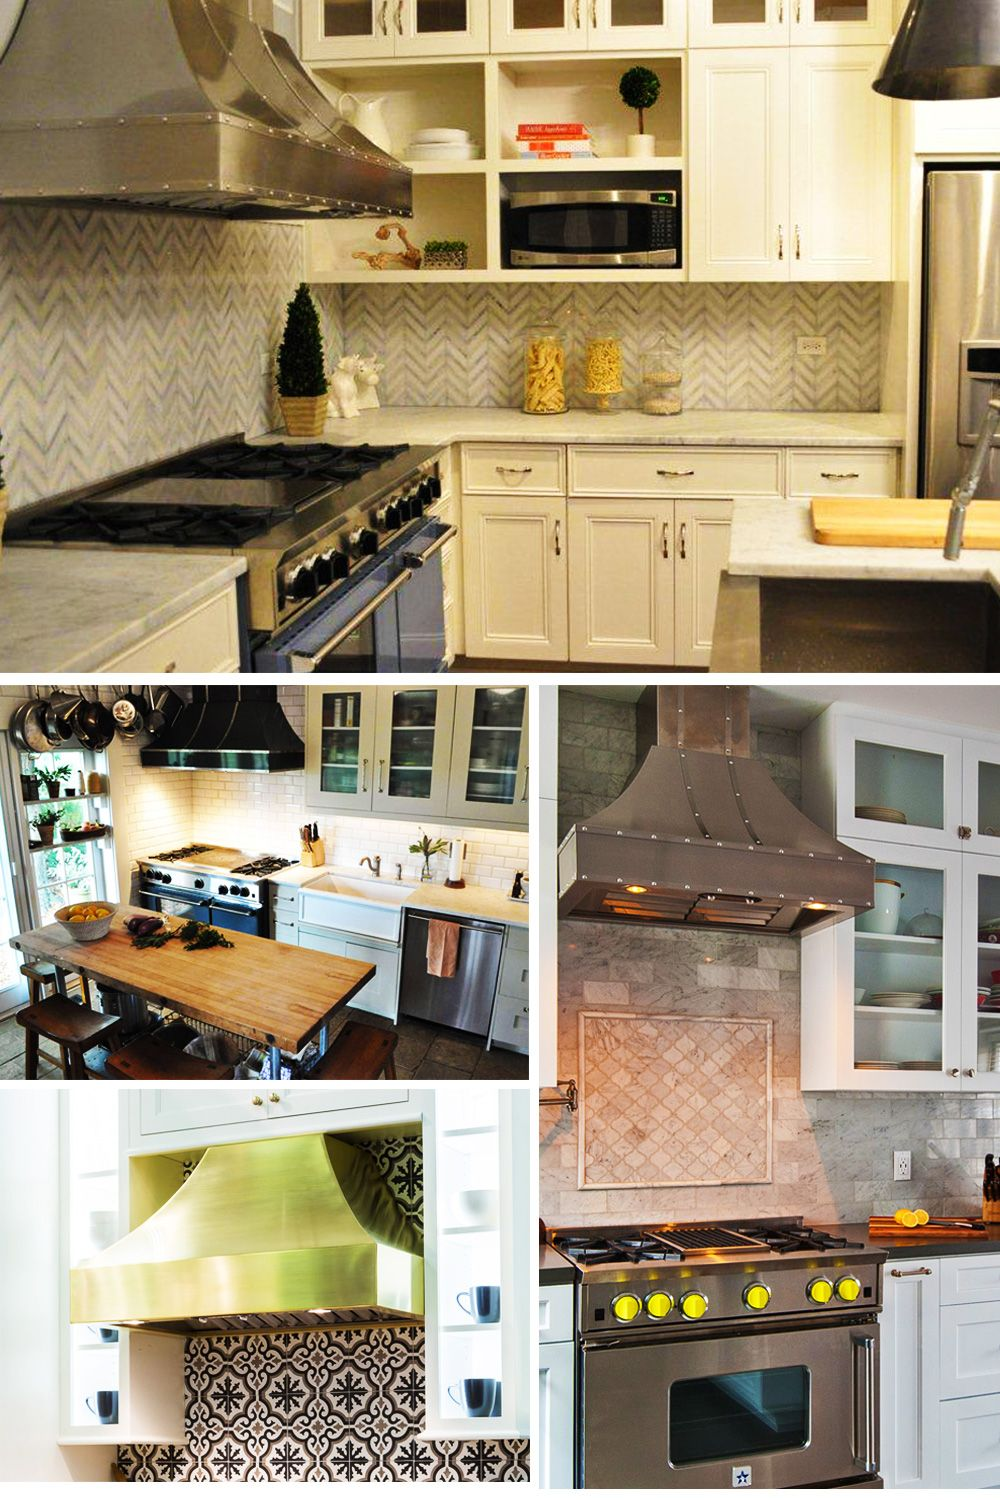 open burner gas ranges and stoves